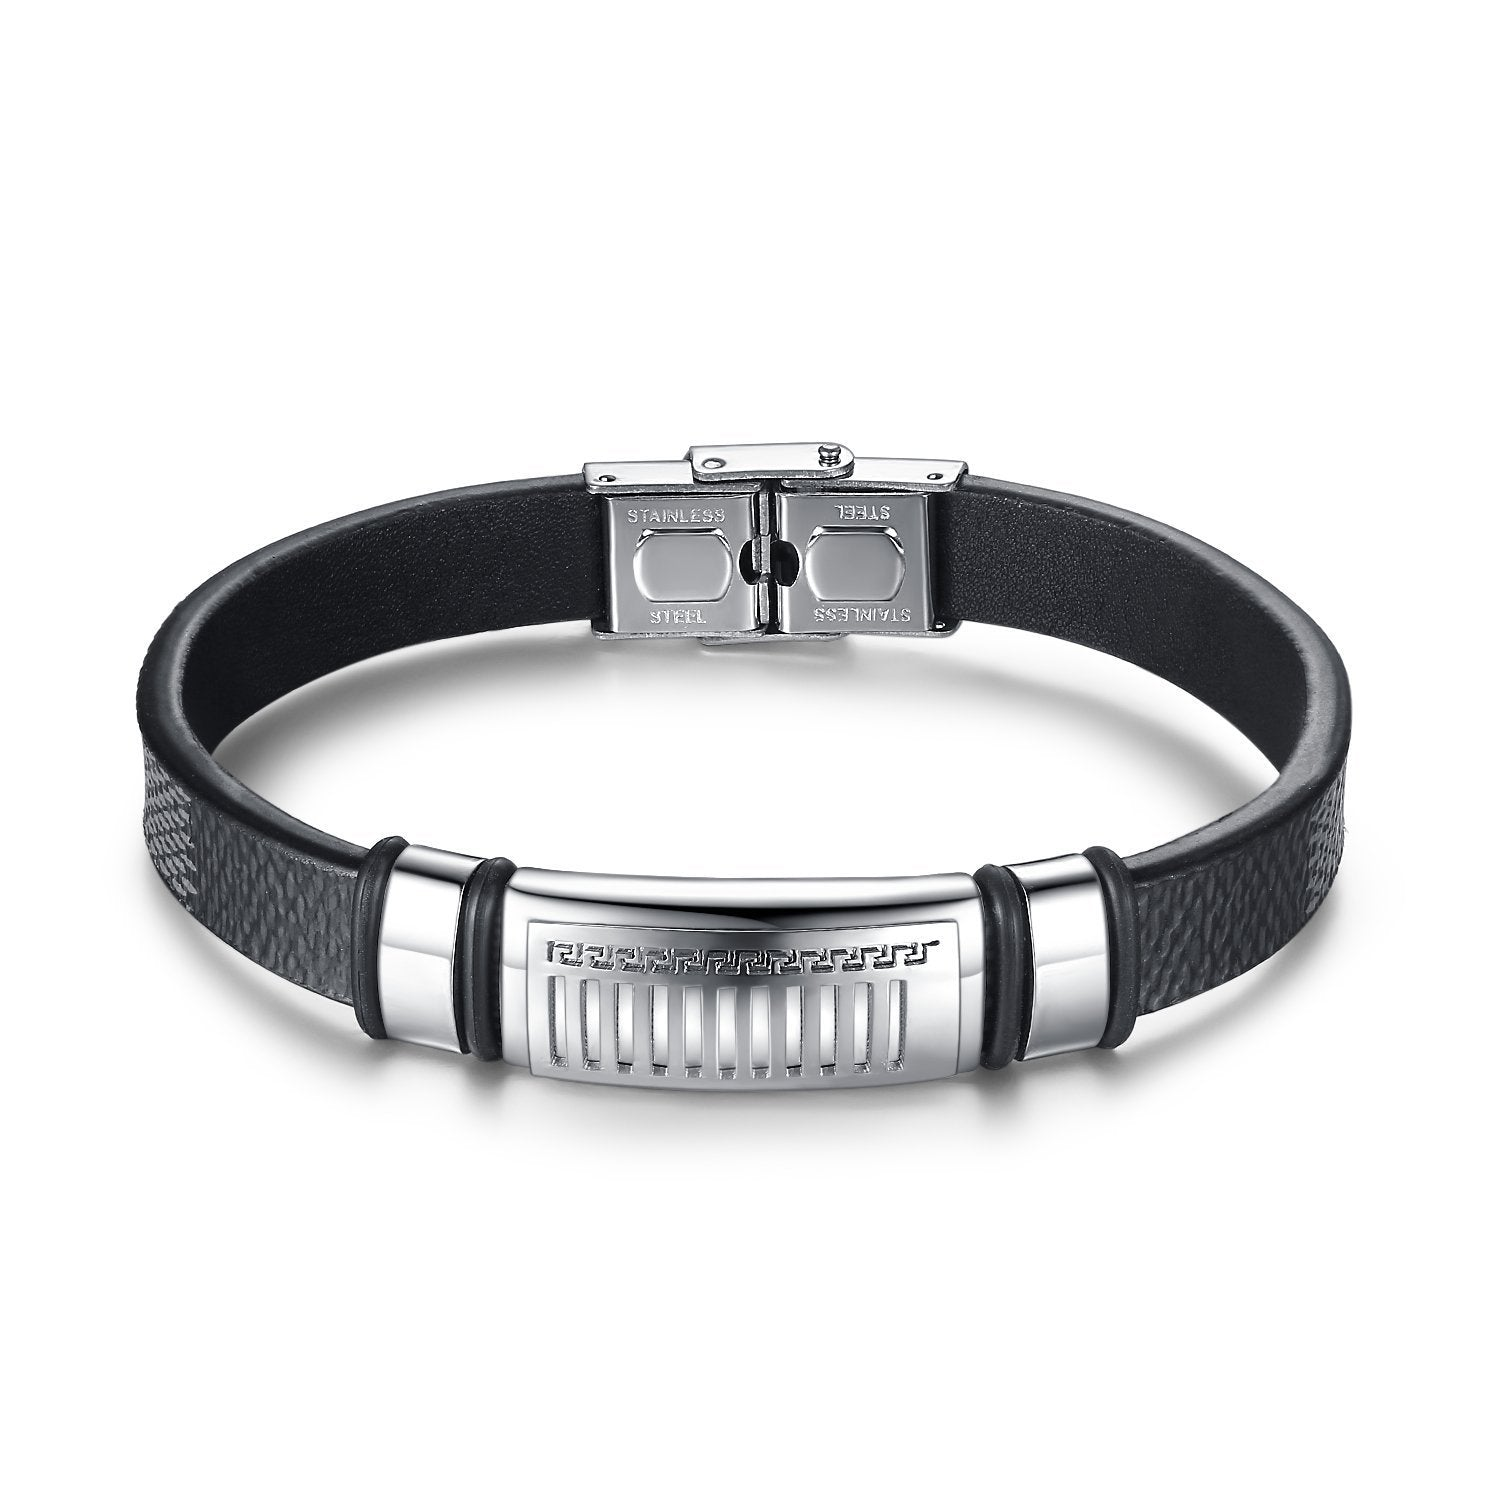 Aoiy Men's Stainless Steel Greek Key and Black Leather Bracelet, ggb014wu